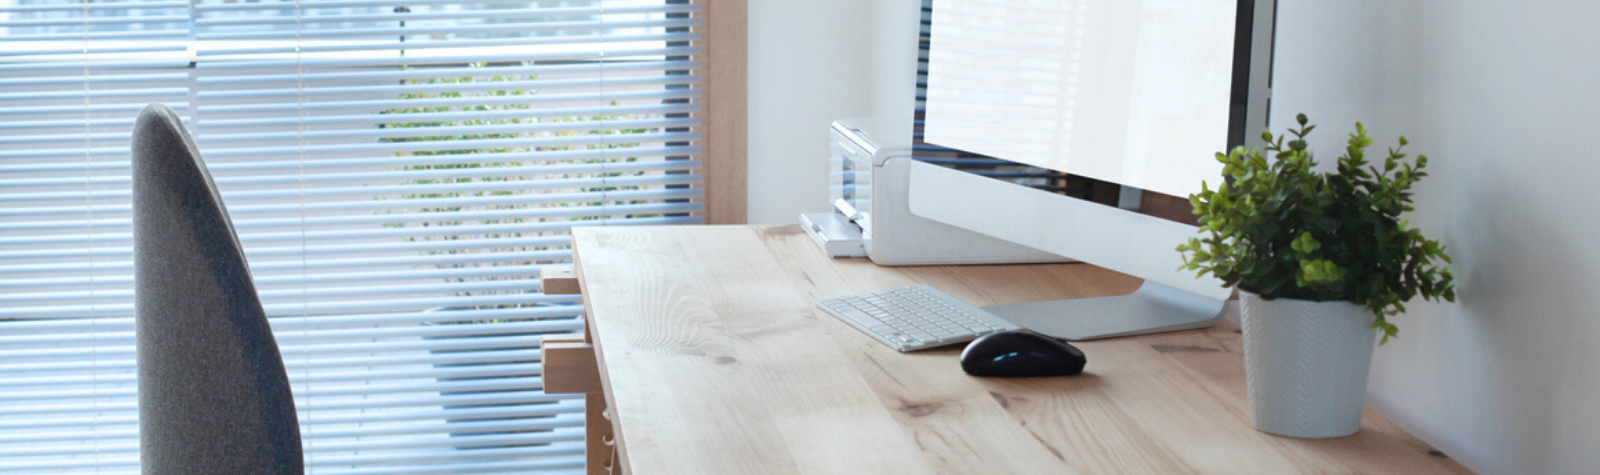 3 Ways to Set up Your Productive Home Office